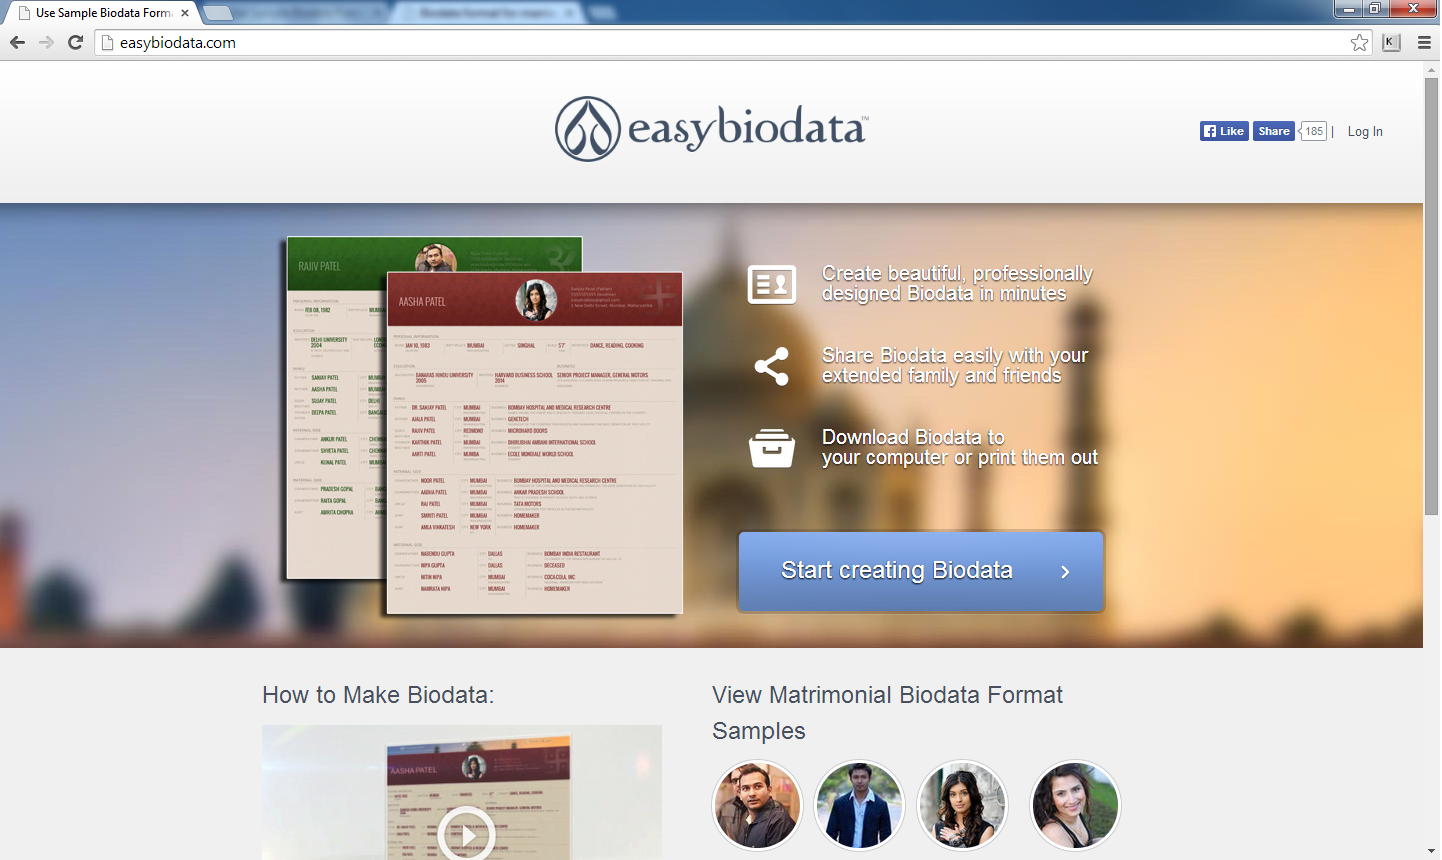 The website for EasyBioData.com.